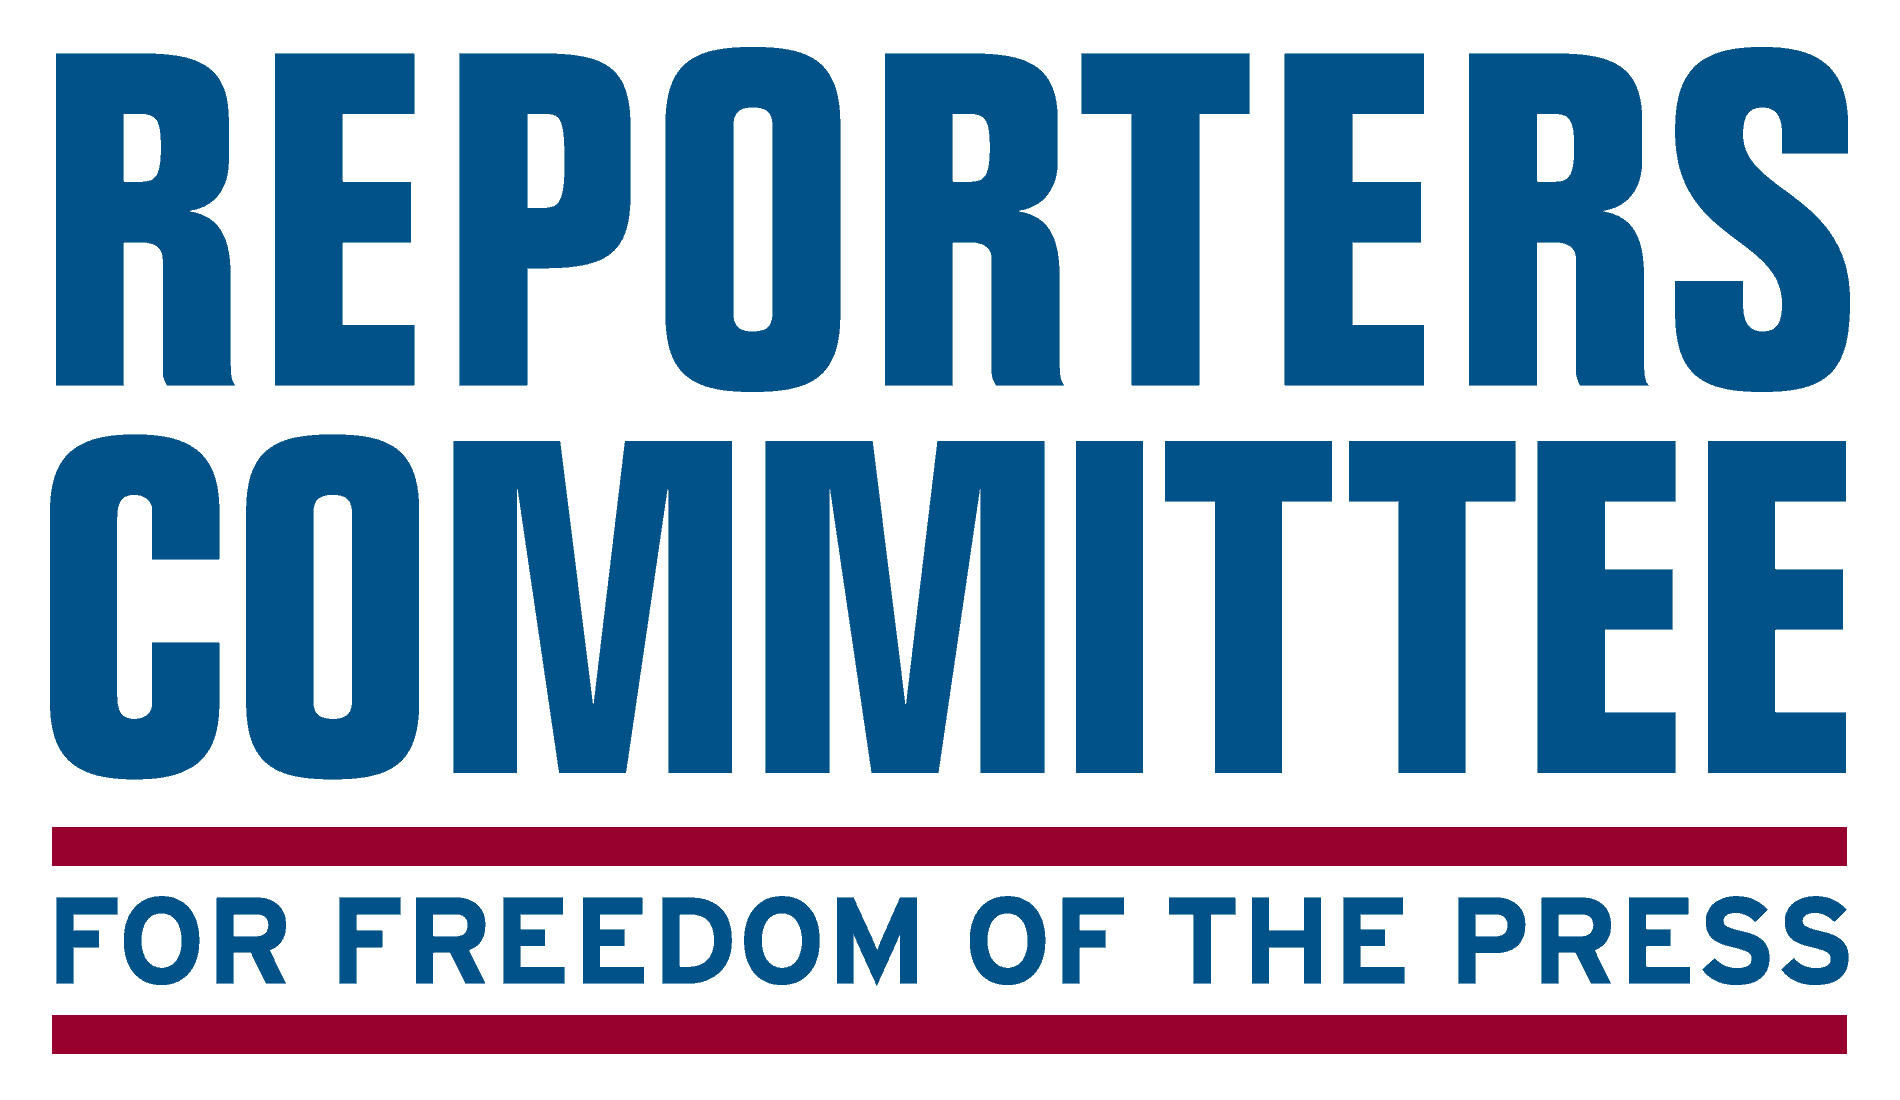 Logo of The Reporters Committee for Freedom of the Press